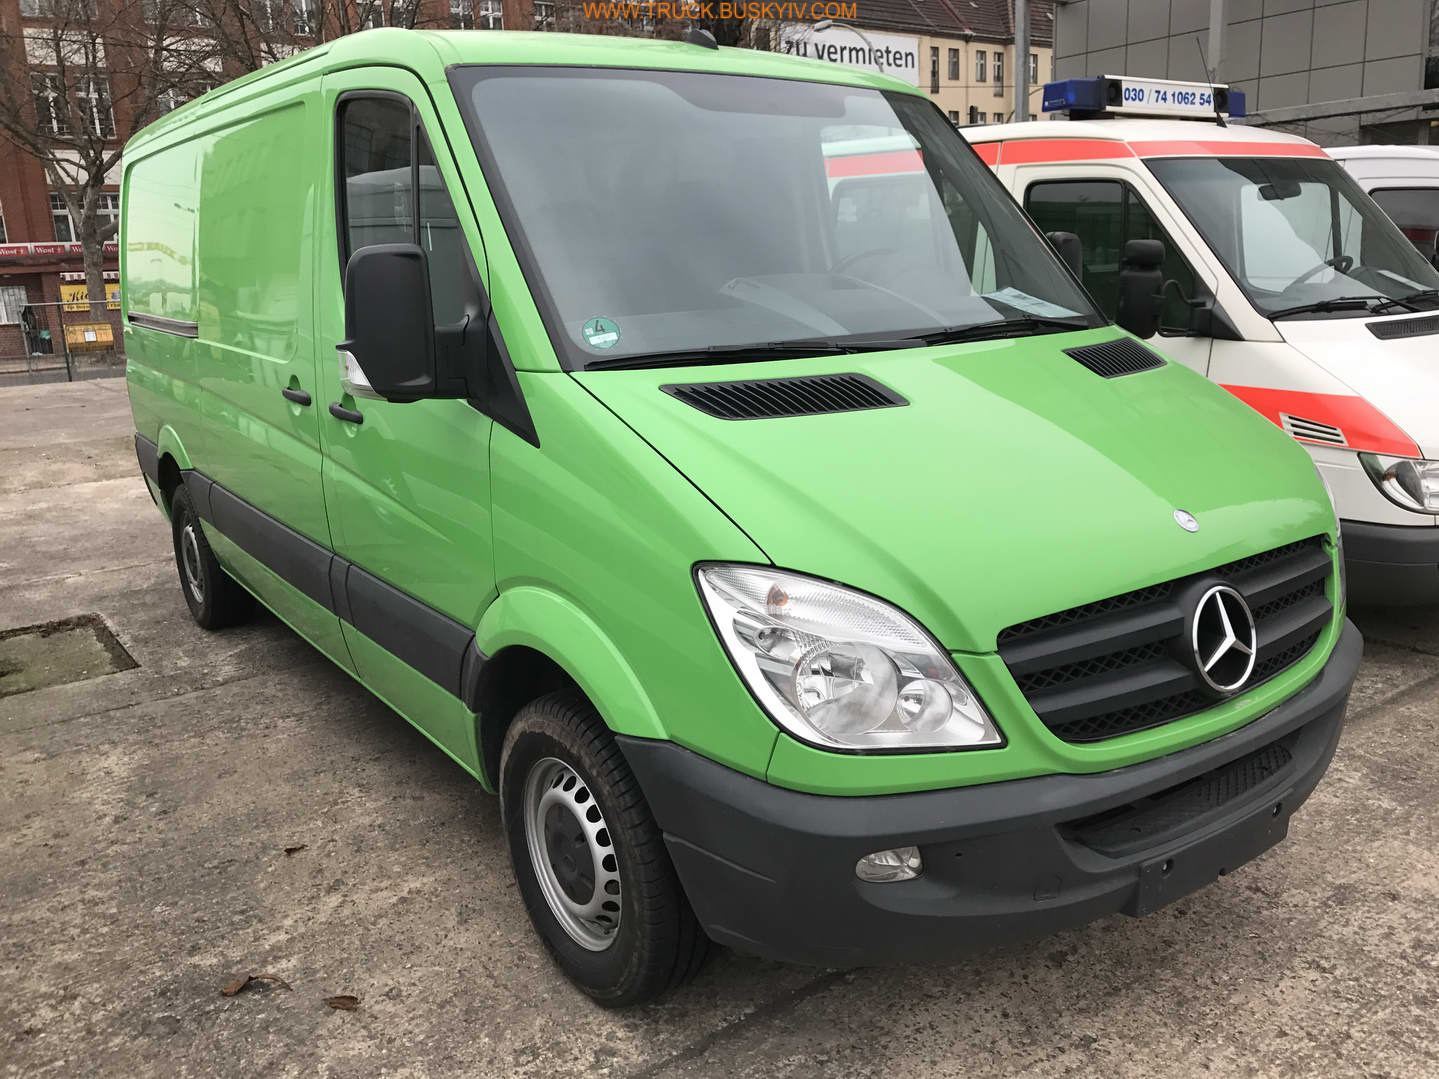 2012_mb_sprinter313_green_02